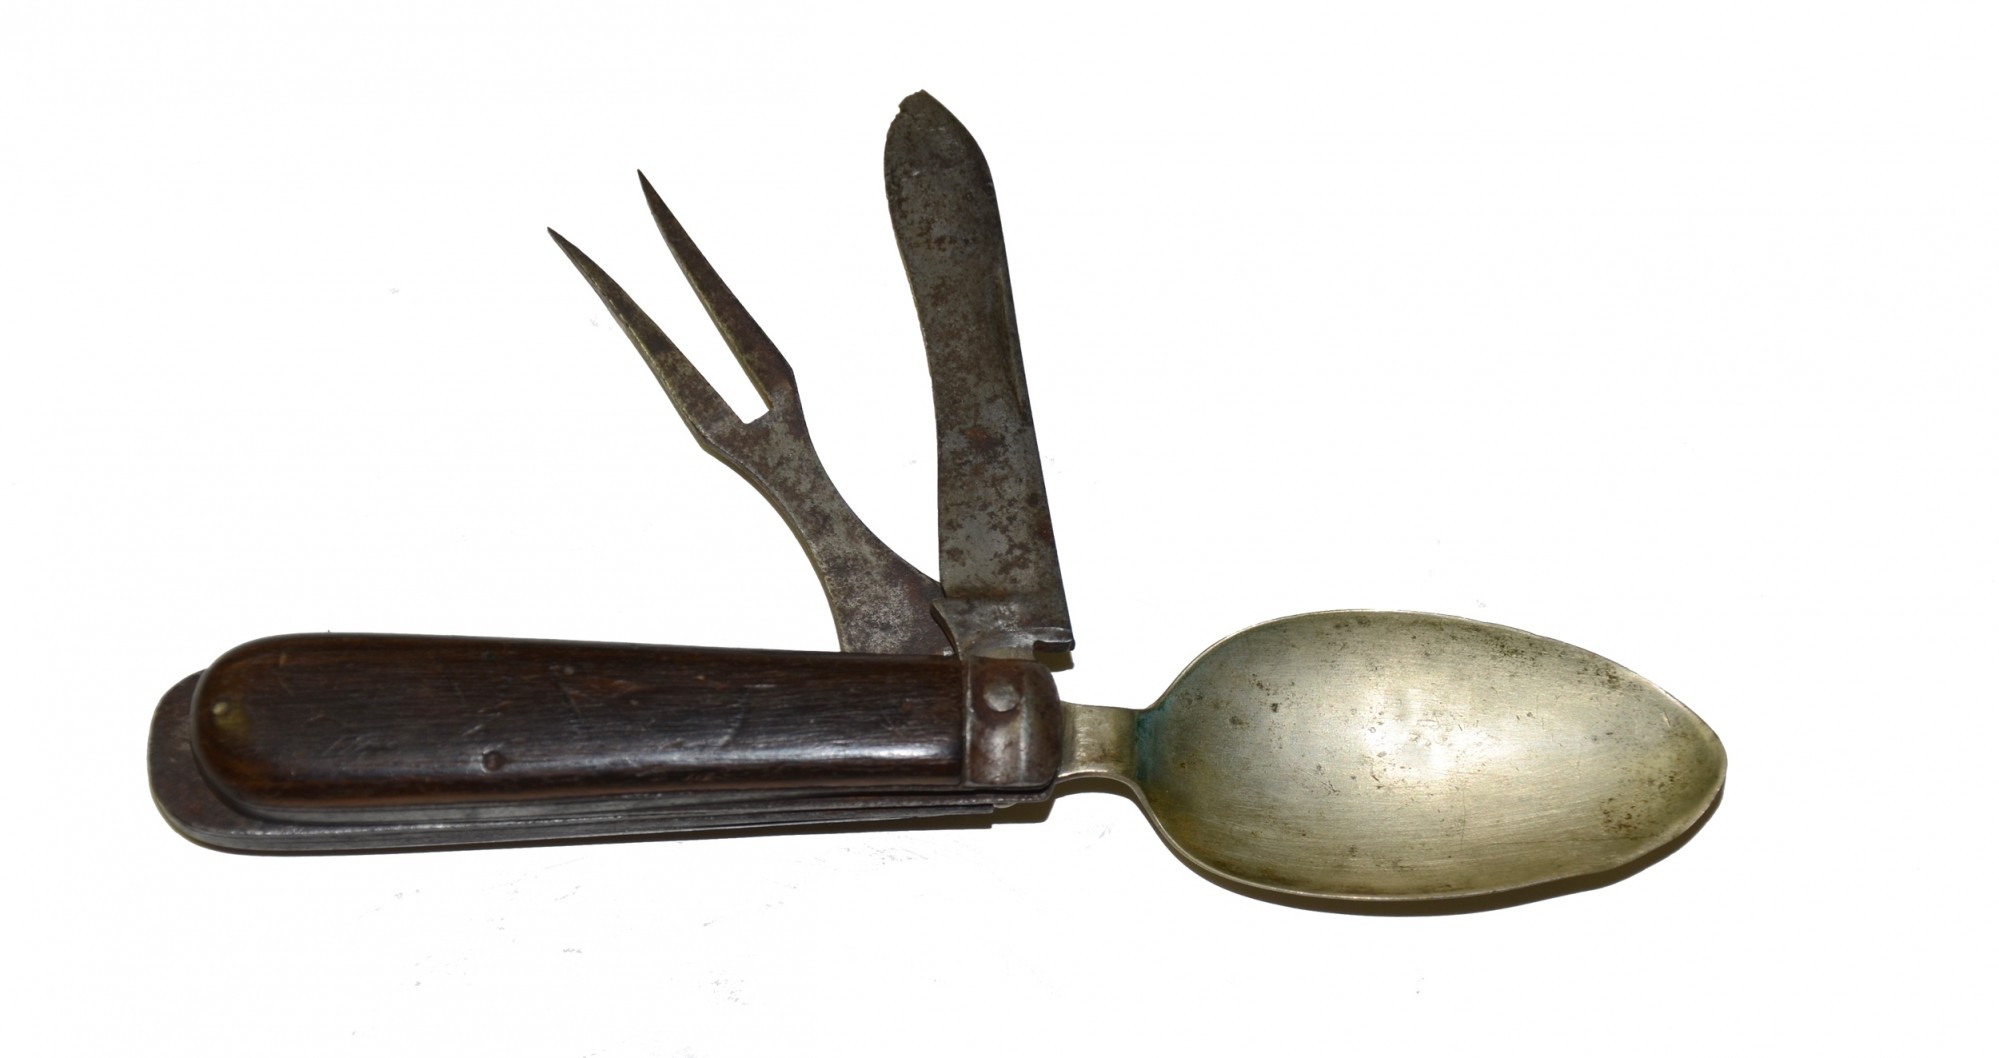 CIVIL WAR COMBINATION KNIFE FORK AND SPOON